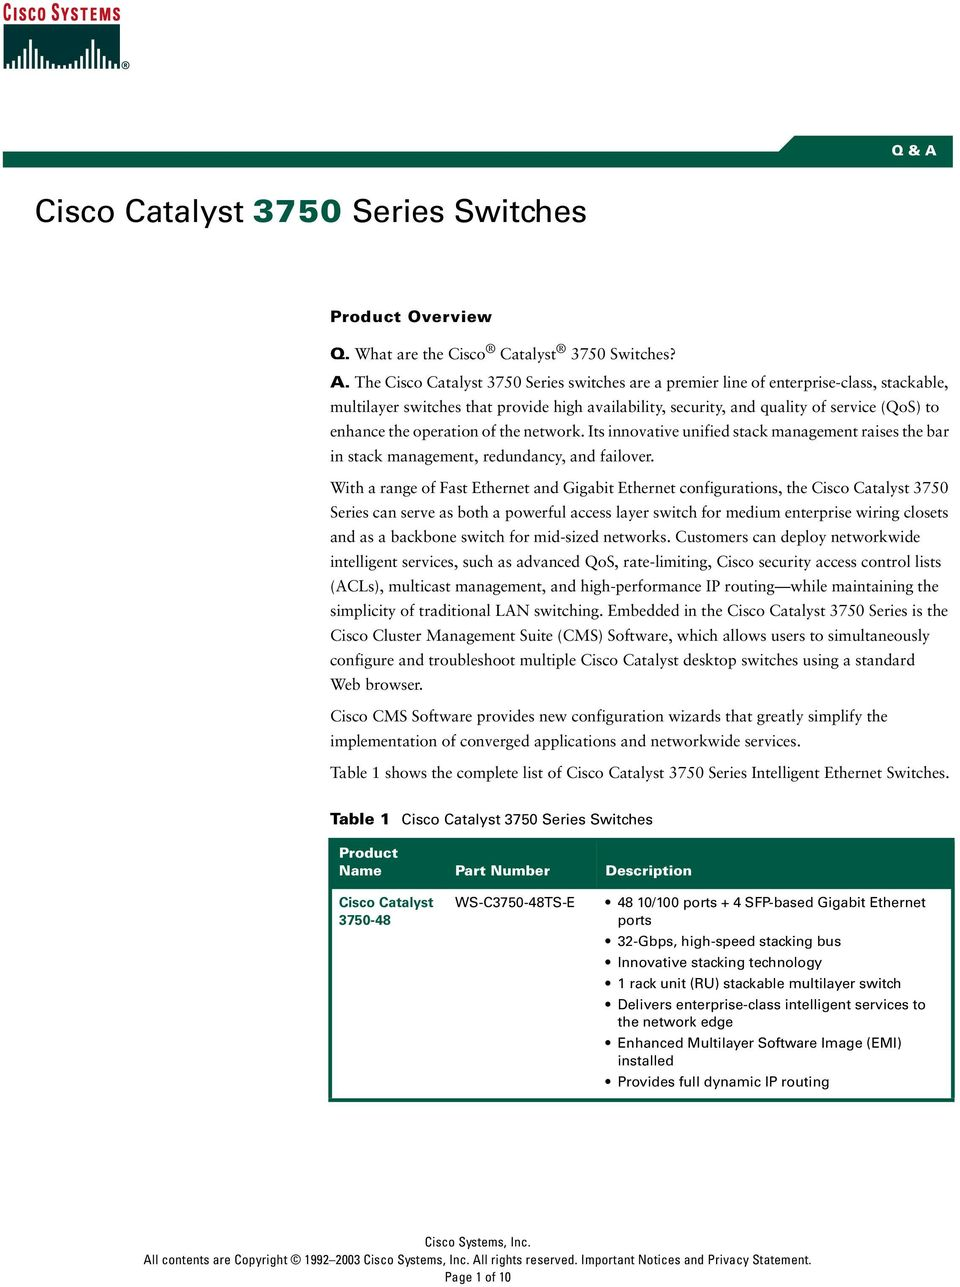 The 3750 Series switches are a premier line of enterprise-class, stackable, multilayer switches that provide high availability, security, and quality of service (QoS) to enhance the operation of the